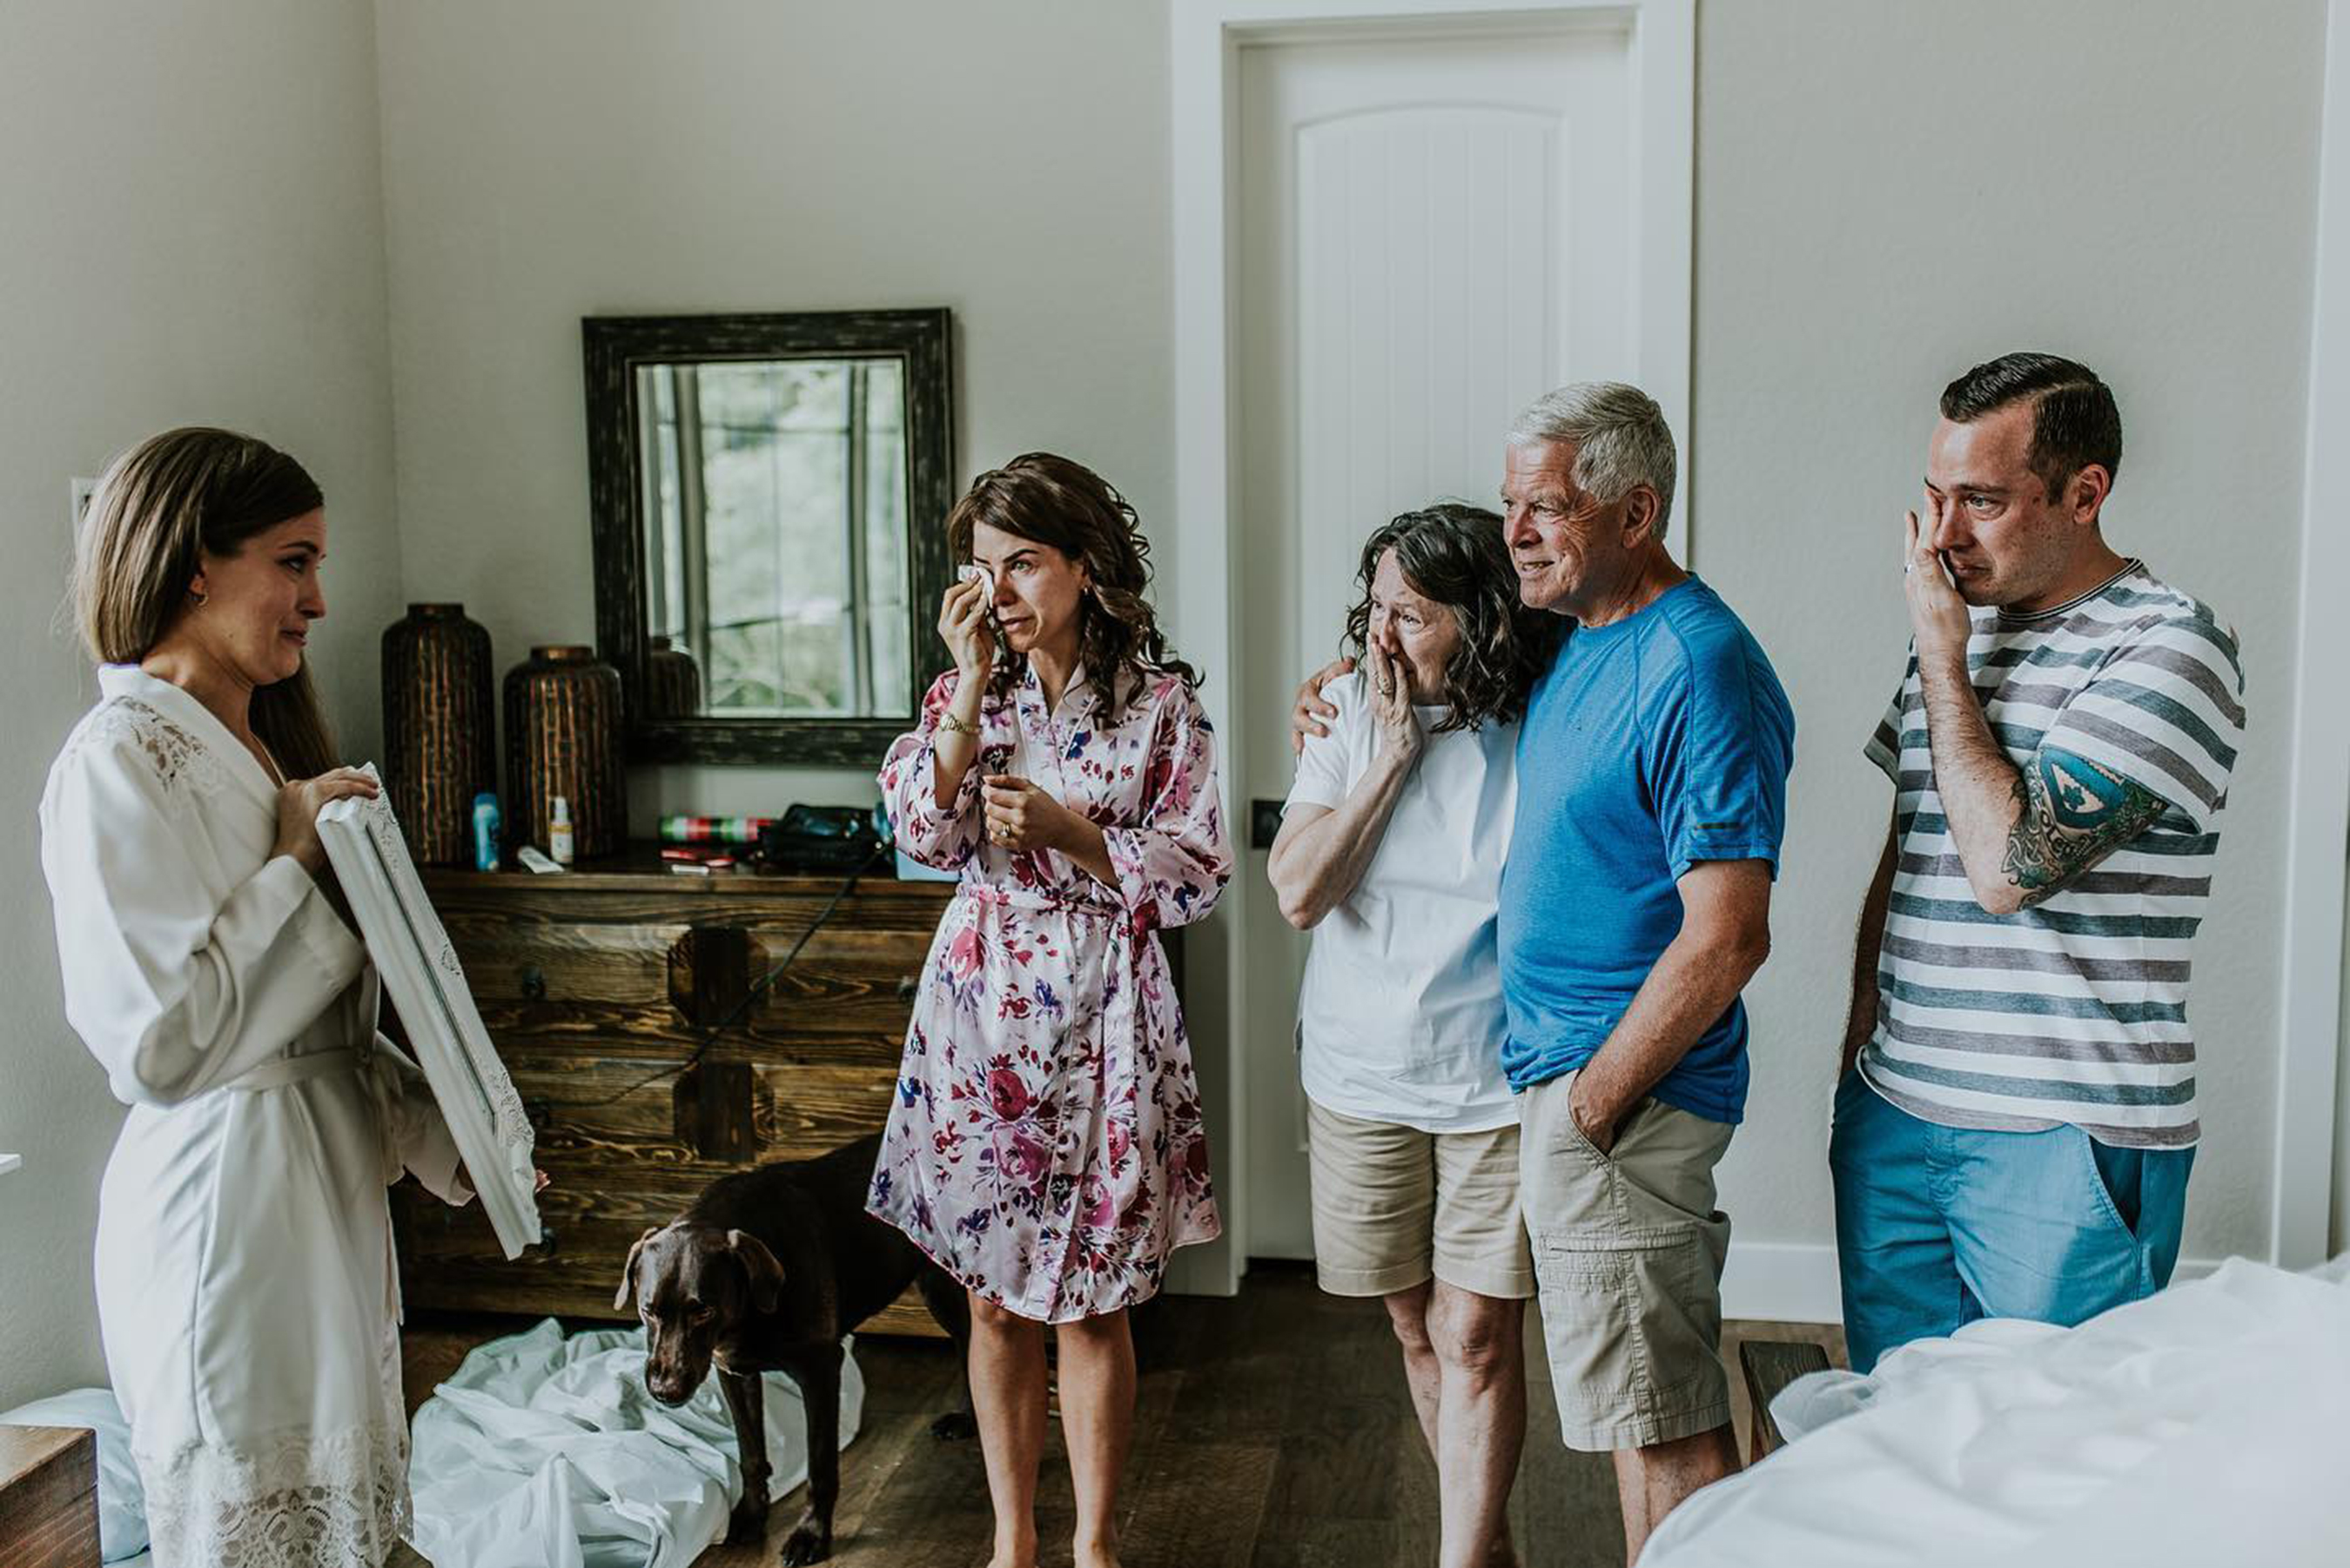 Bride-to-Be Flies to Grandmother in Hospice for 'Secret' Photoshoot in Her Wedding Gown